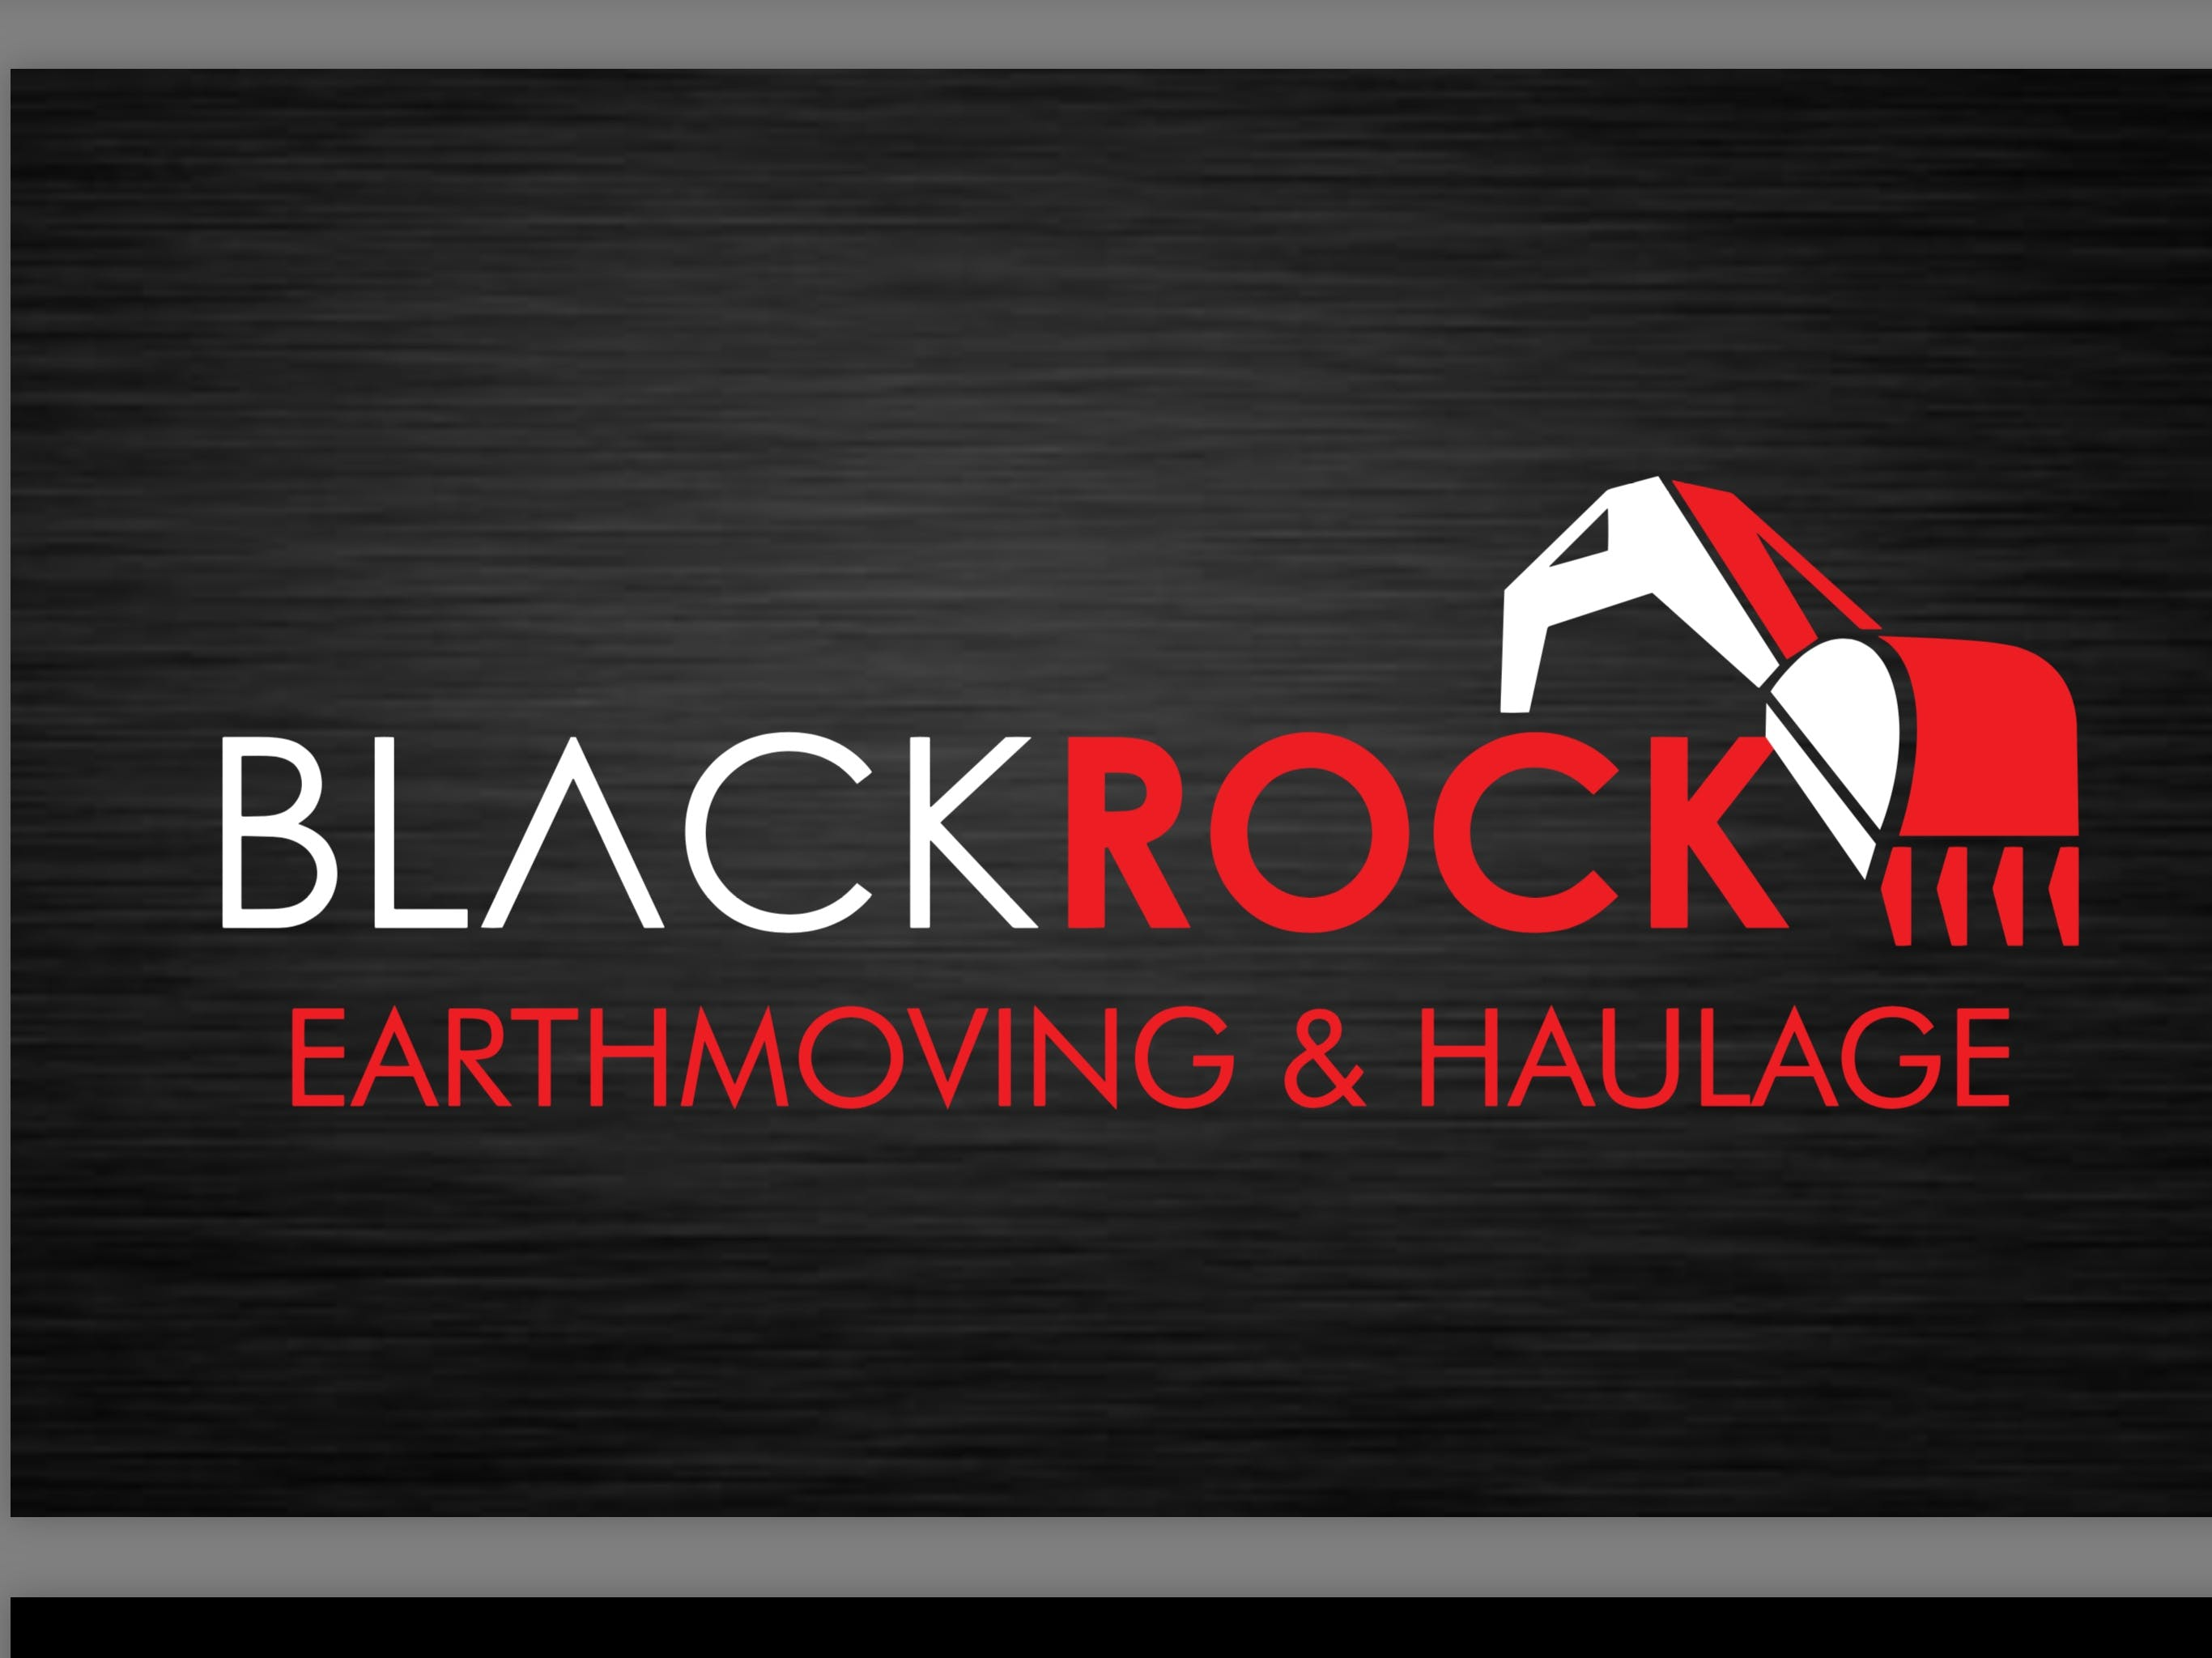 blackrock Earthmoving & Haulage